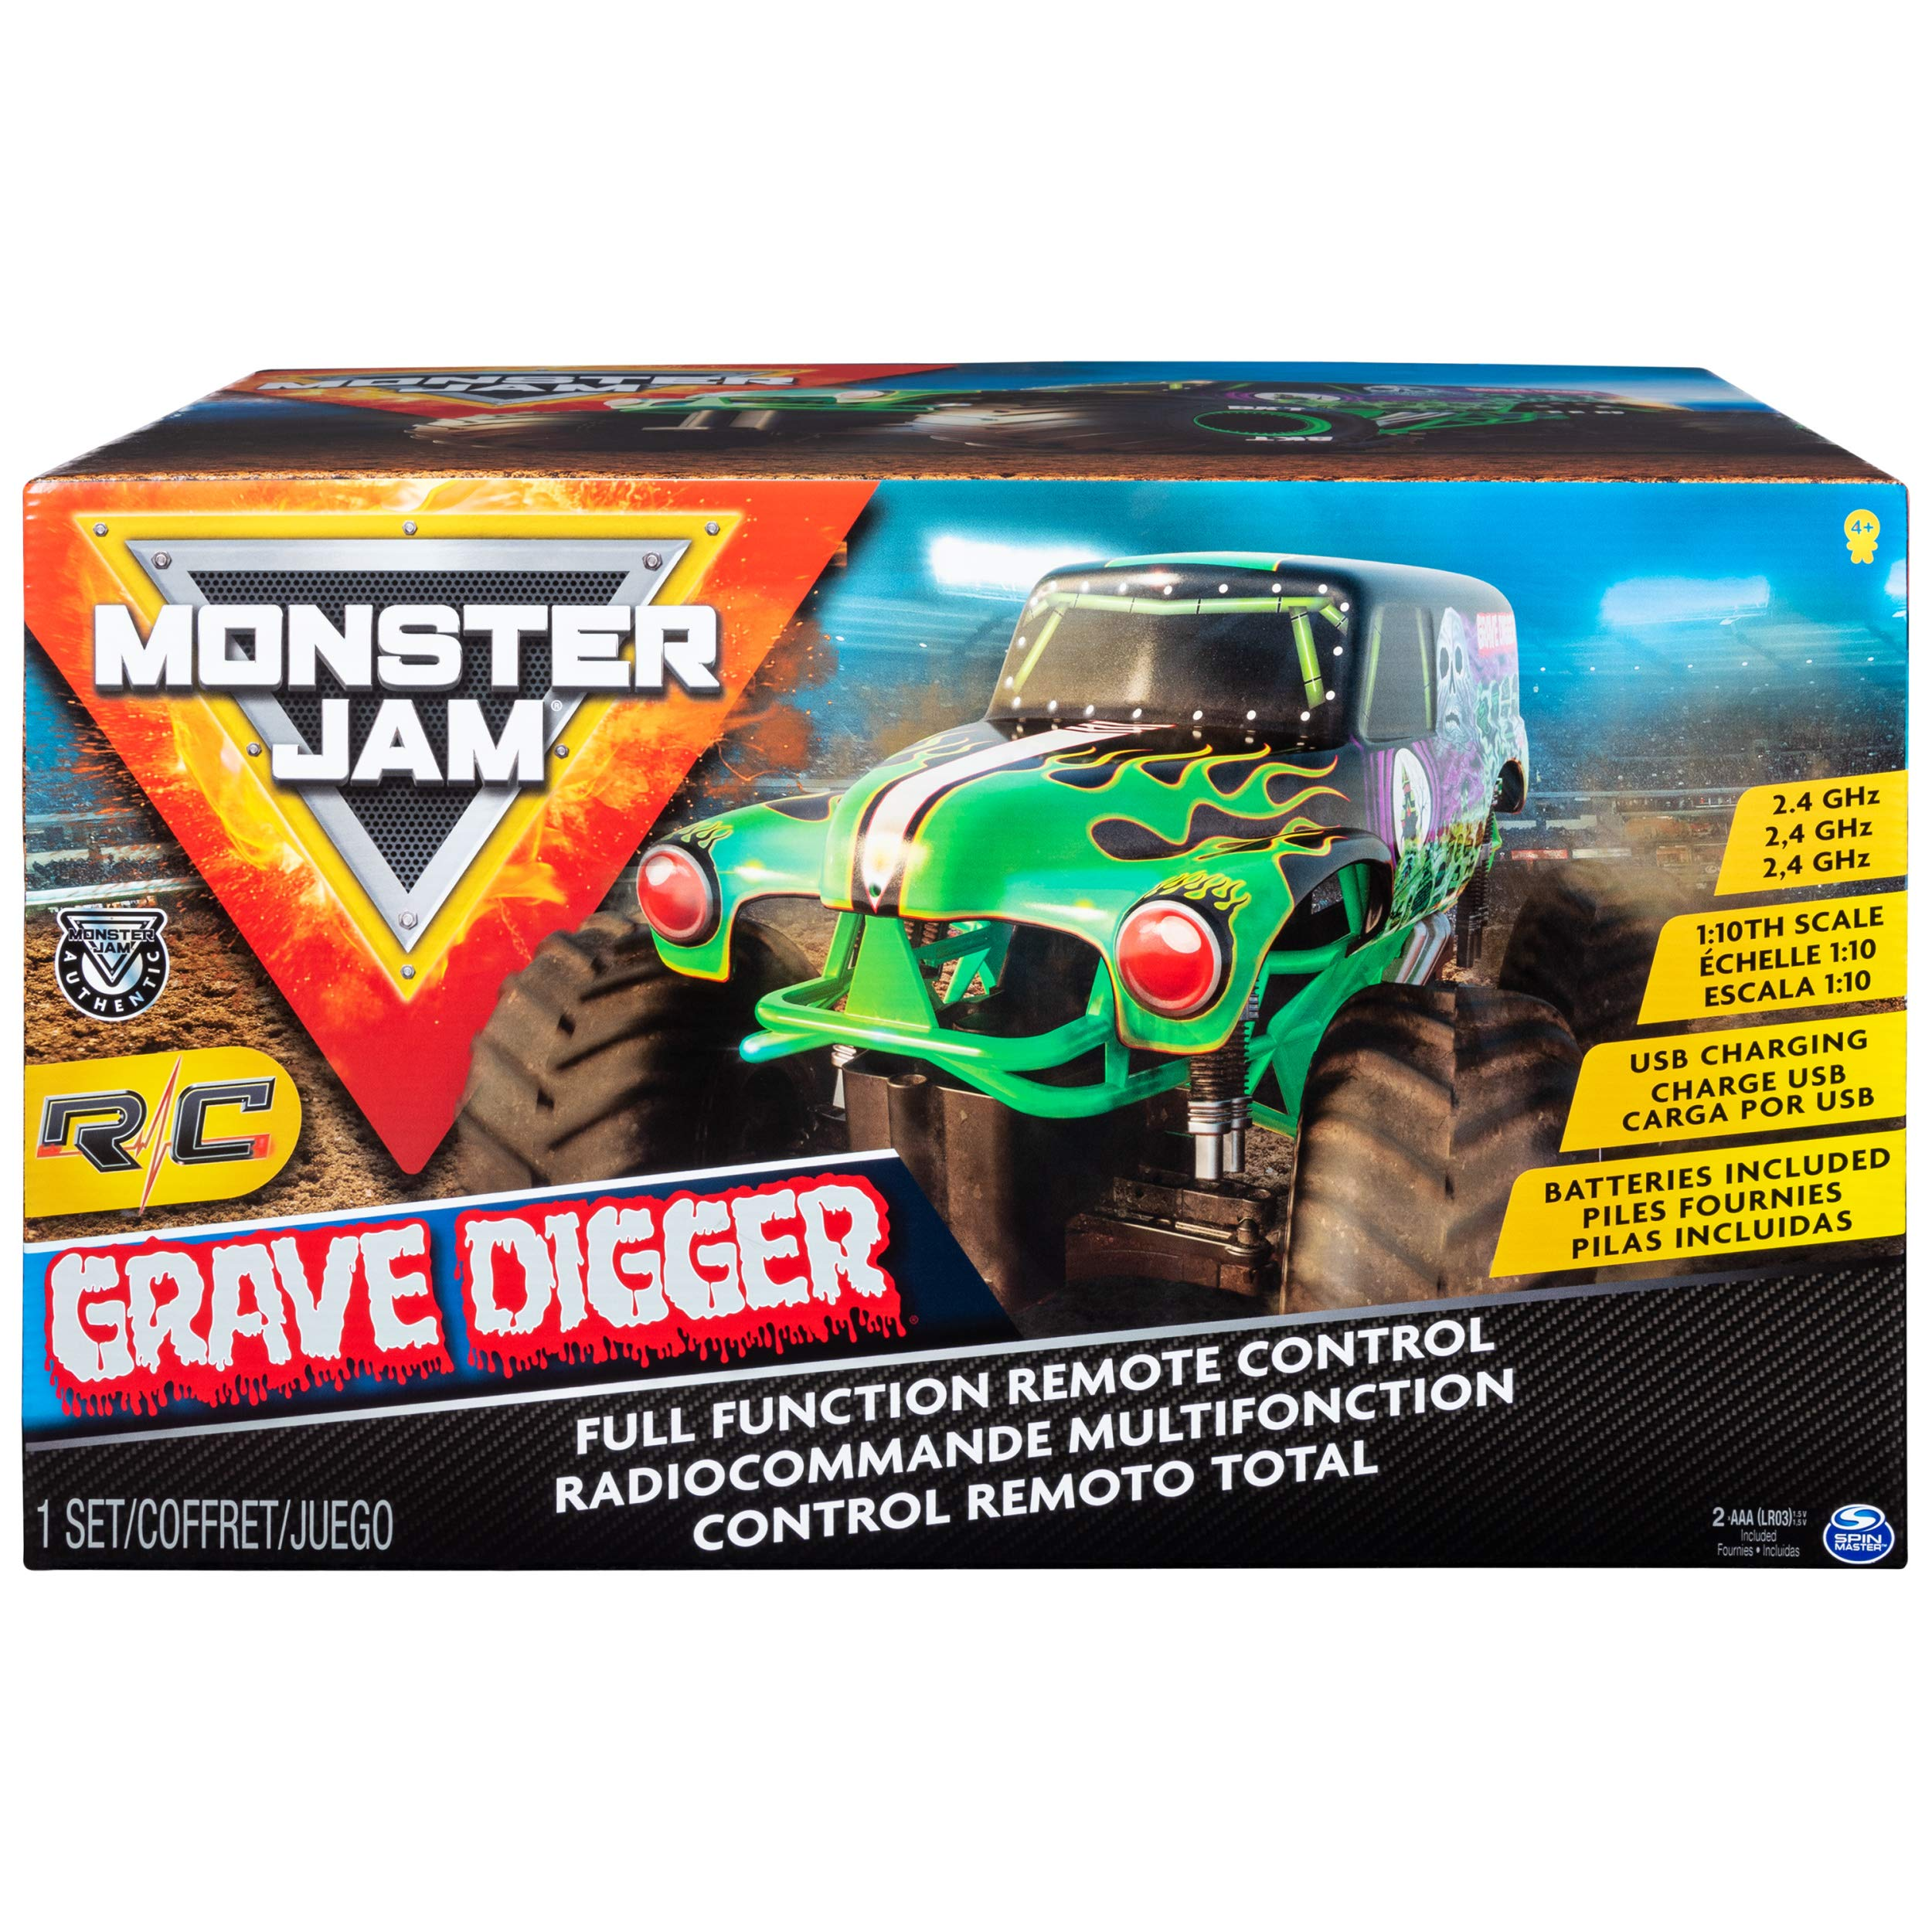 Monster Jam Official Grave Digger Rc Truck 1: 10 Scale with Lights & Sounds For Ages 4 & Up by Monster Jam (Image #2)